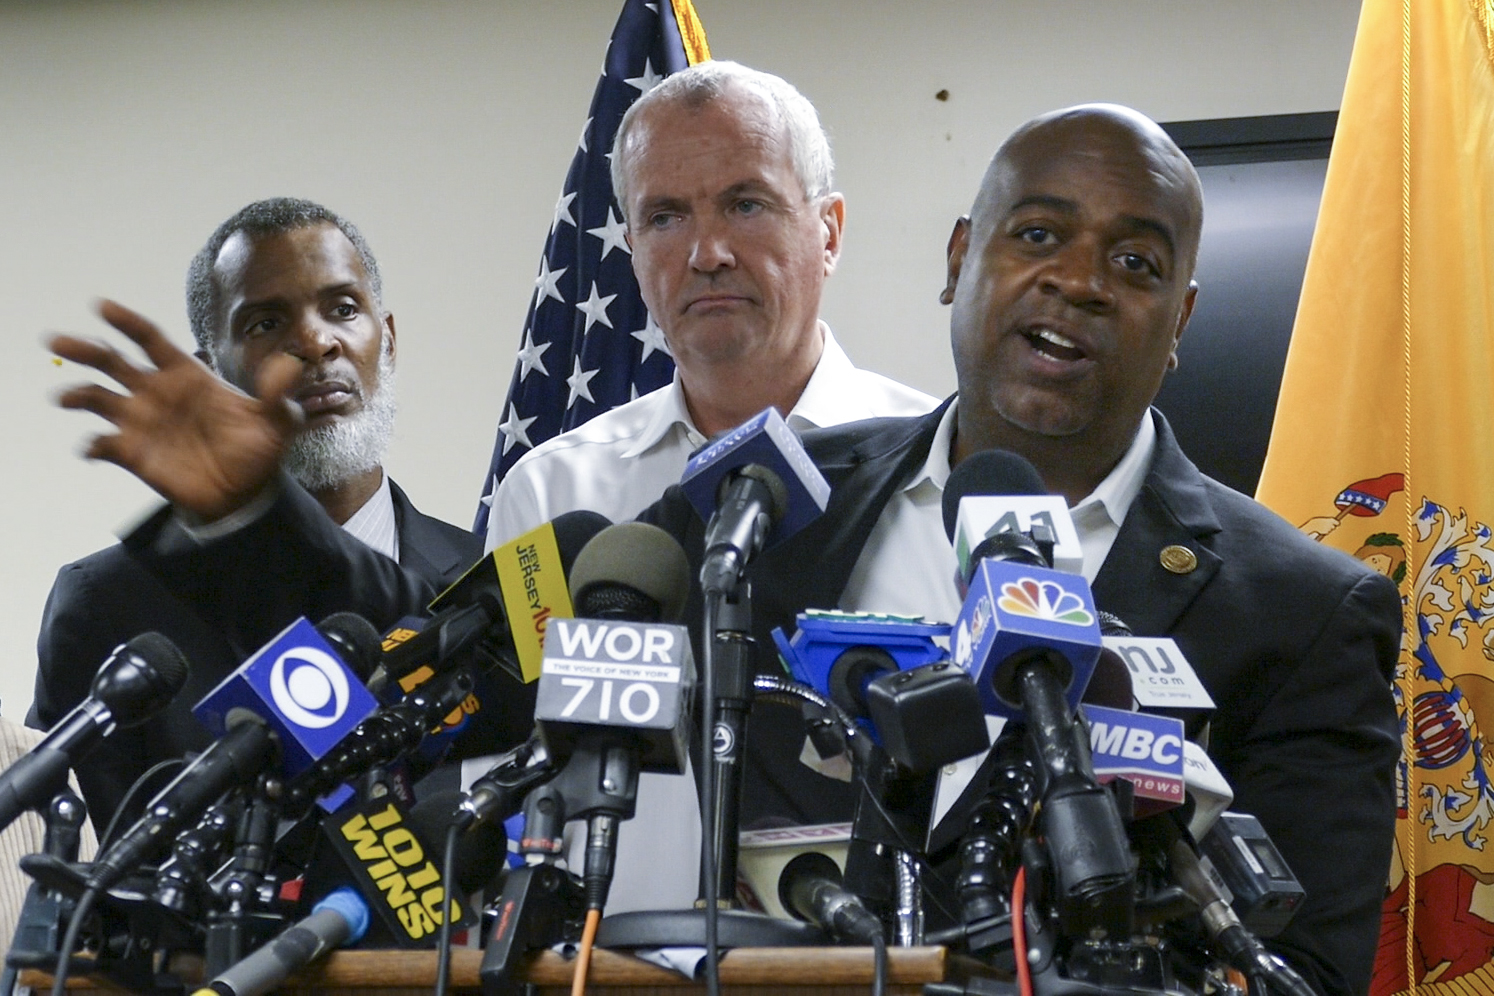 'Baraka lied to us all,' Newark water group says. 'We call for change.'